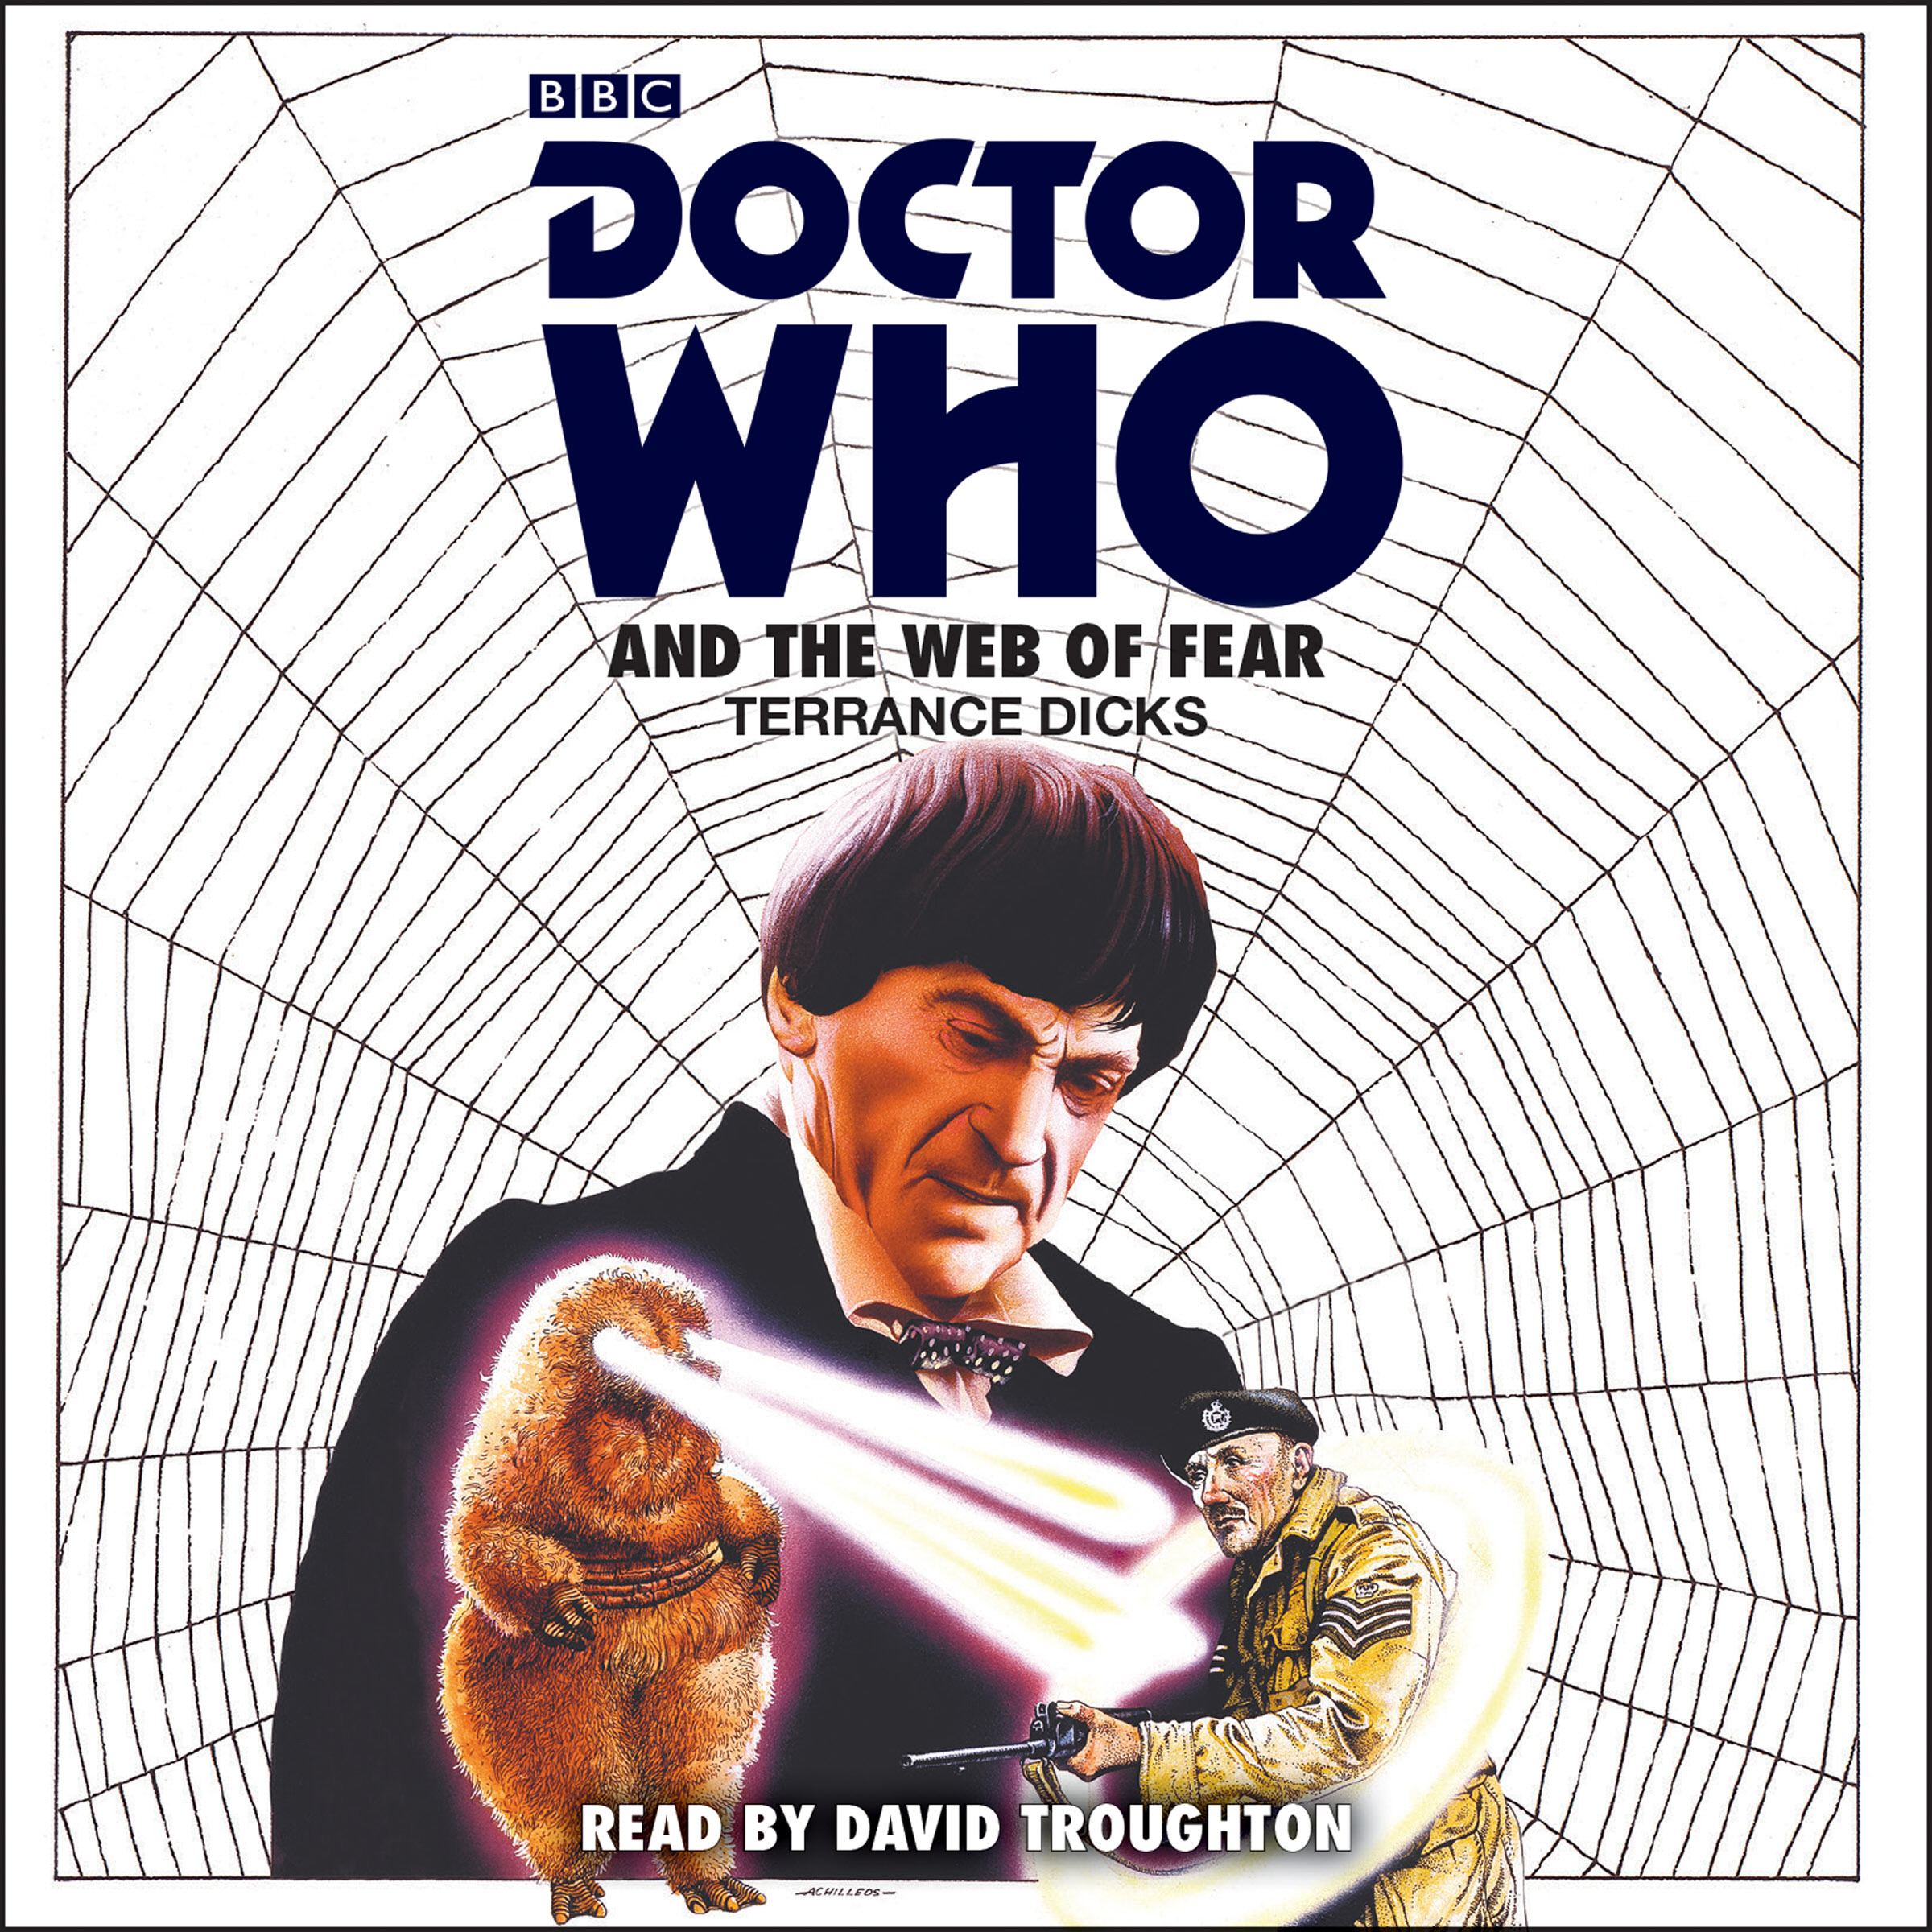 The Web of Fear